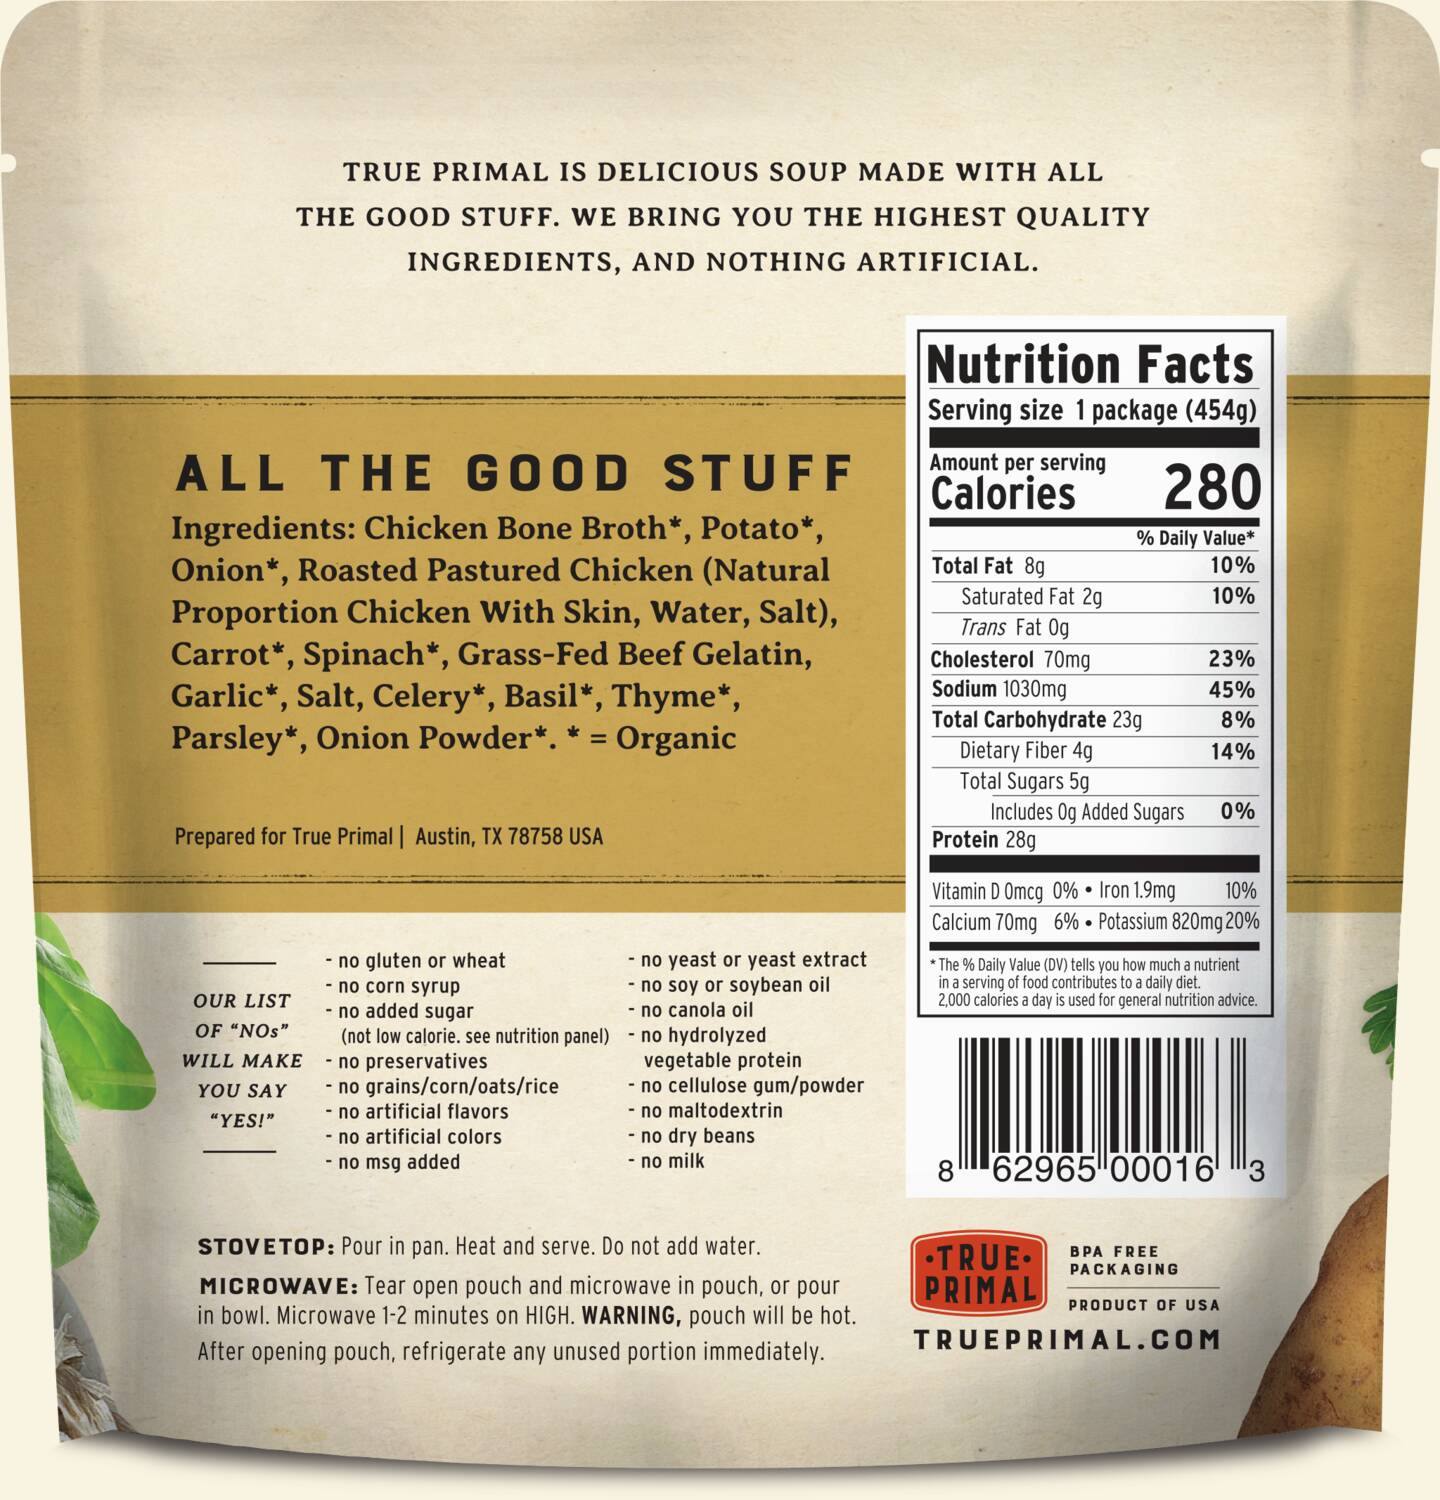 True Primal Tuscan-Style Chicken Soup in pouch, back of label. UPC: 862965000163.